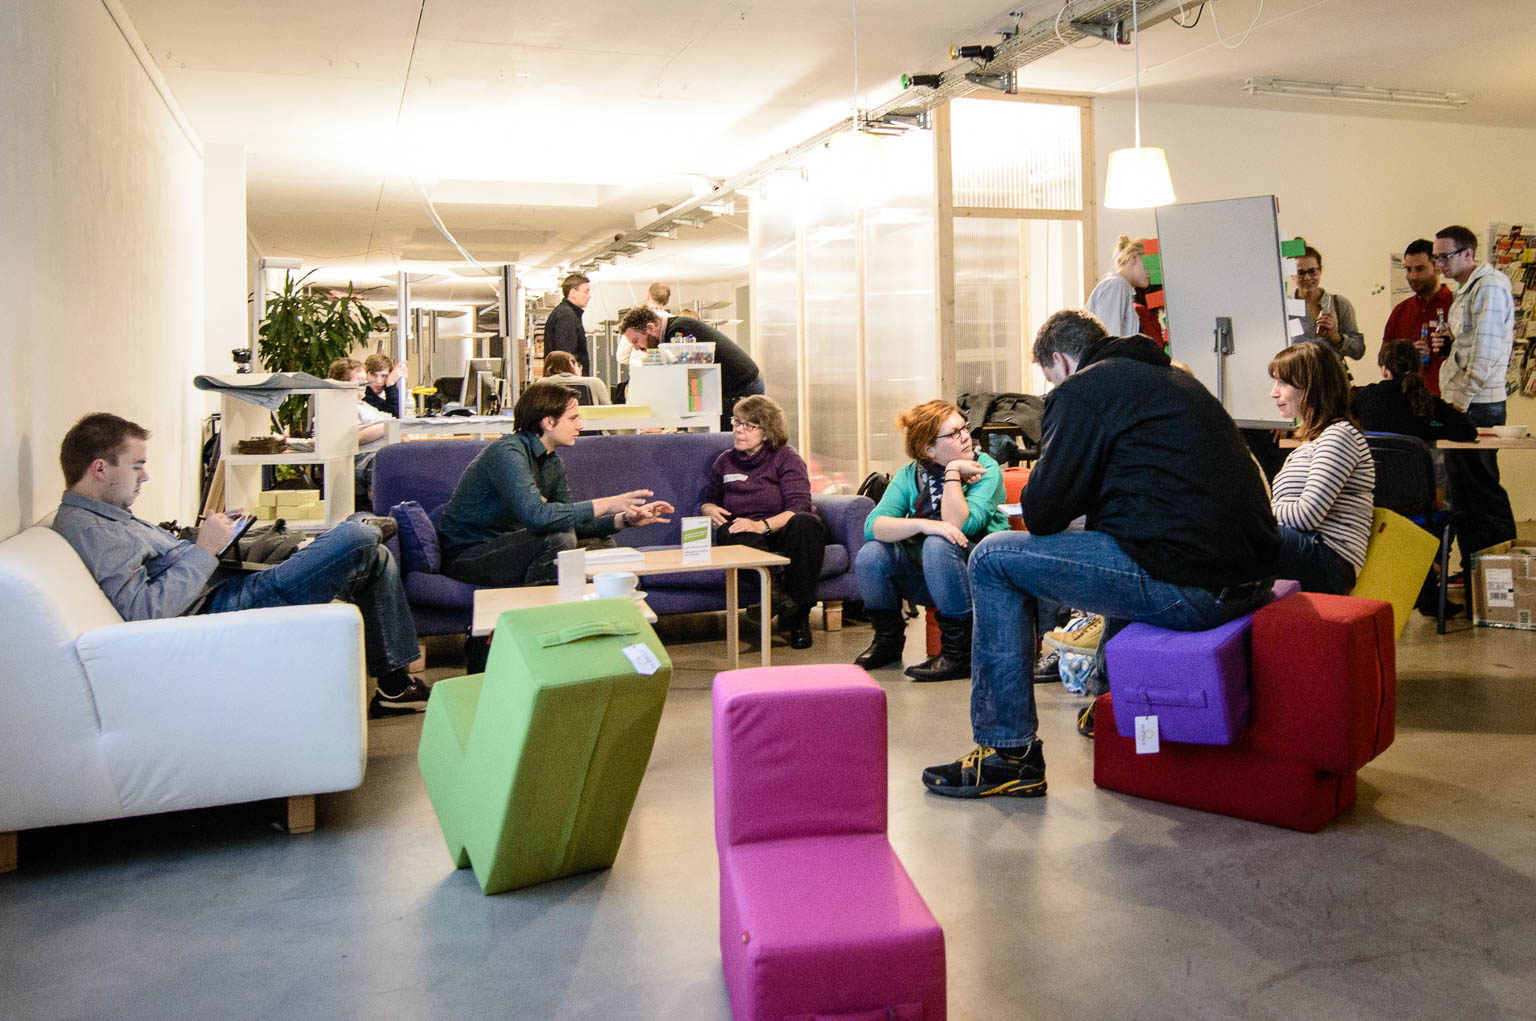 Coworking Nuremberg event lounge with comfortable sofas and seating